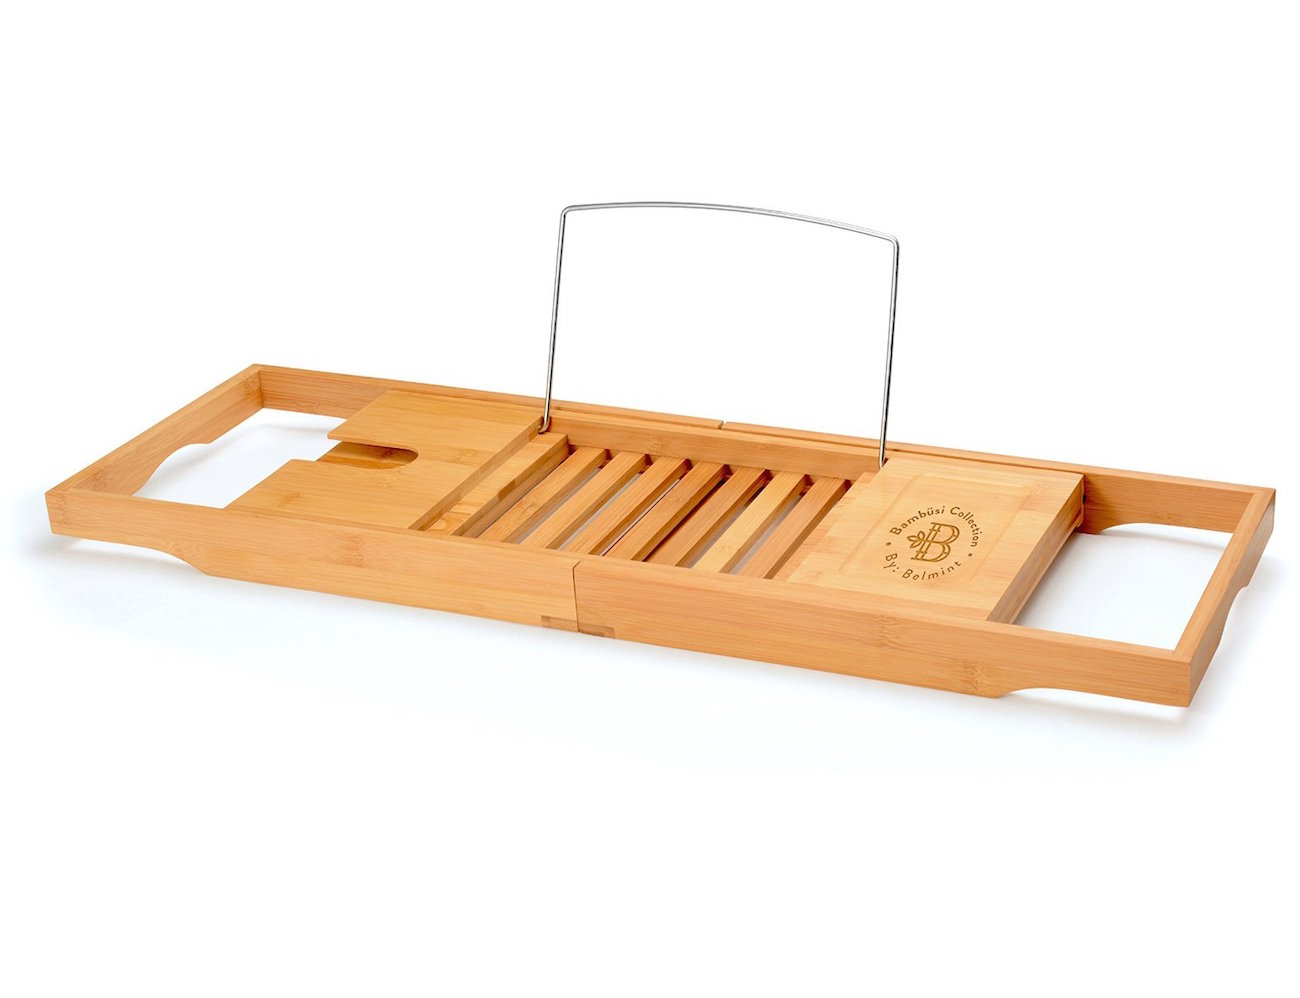 Bamboo Bathtub Caddy From Bambüsi By Belmint